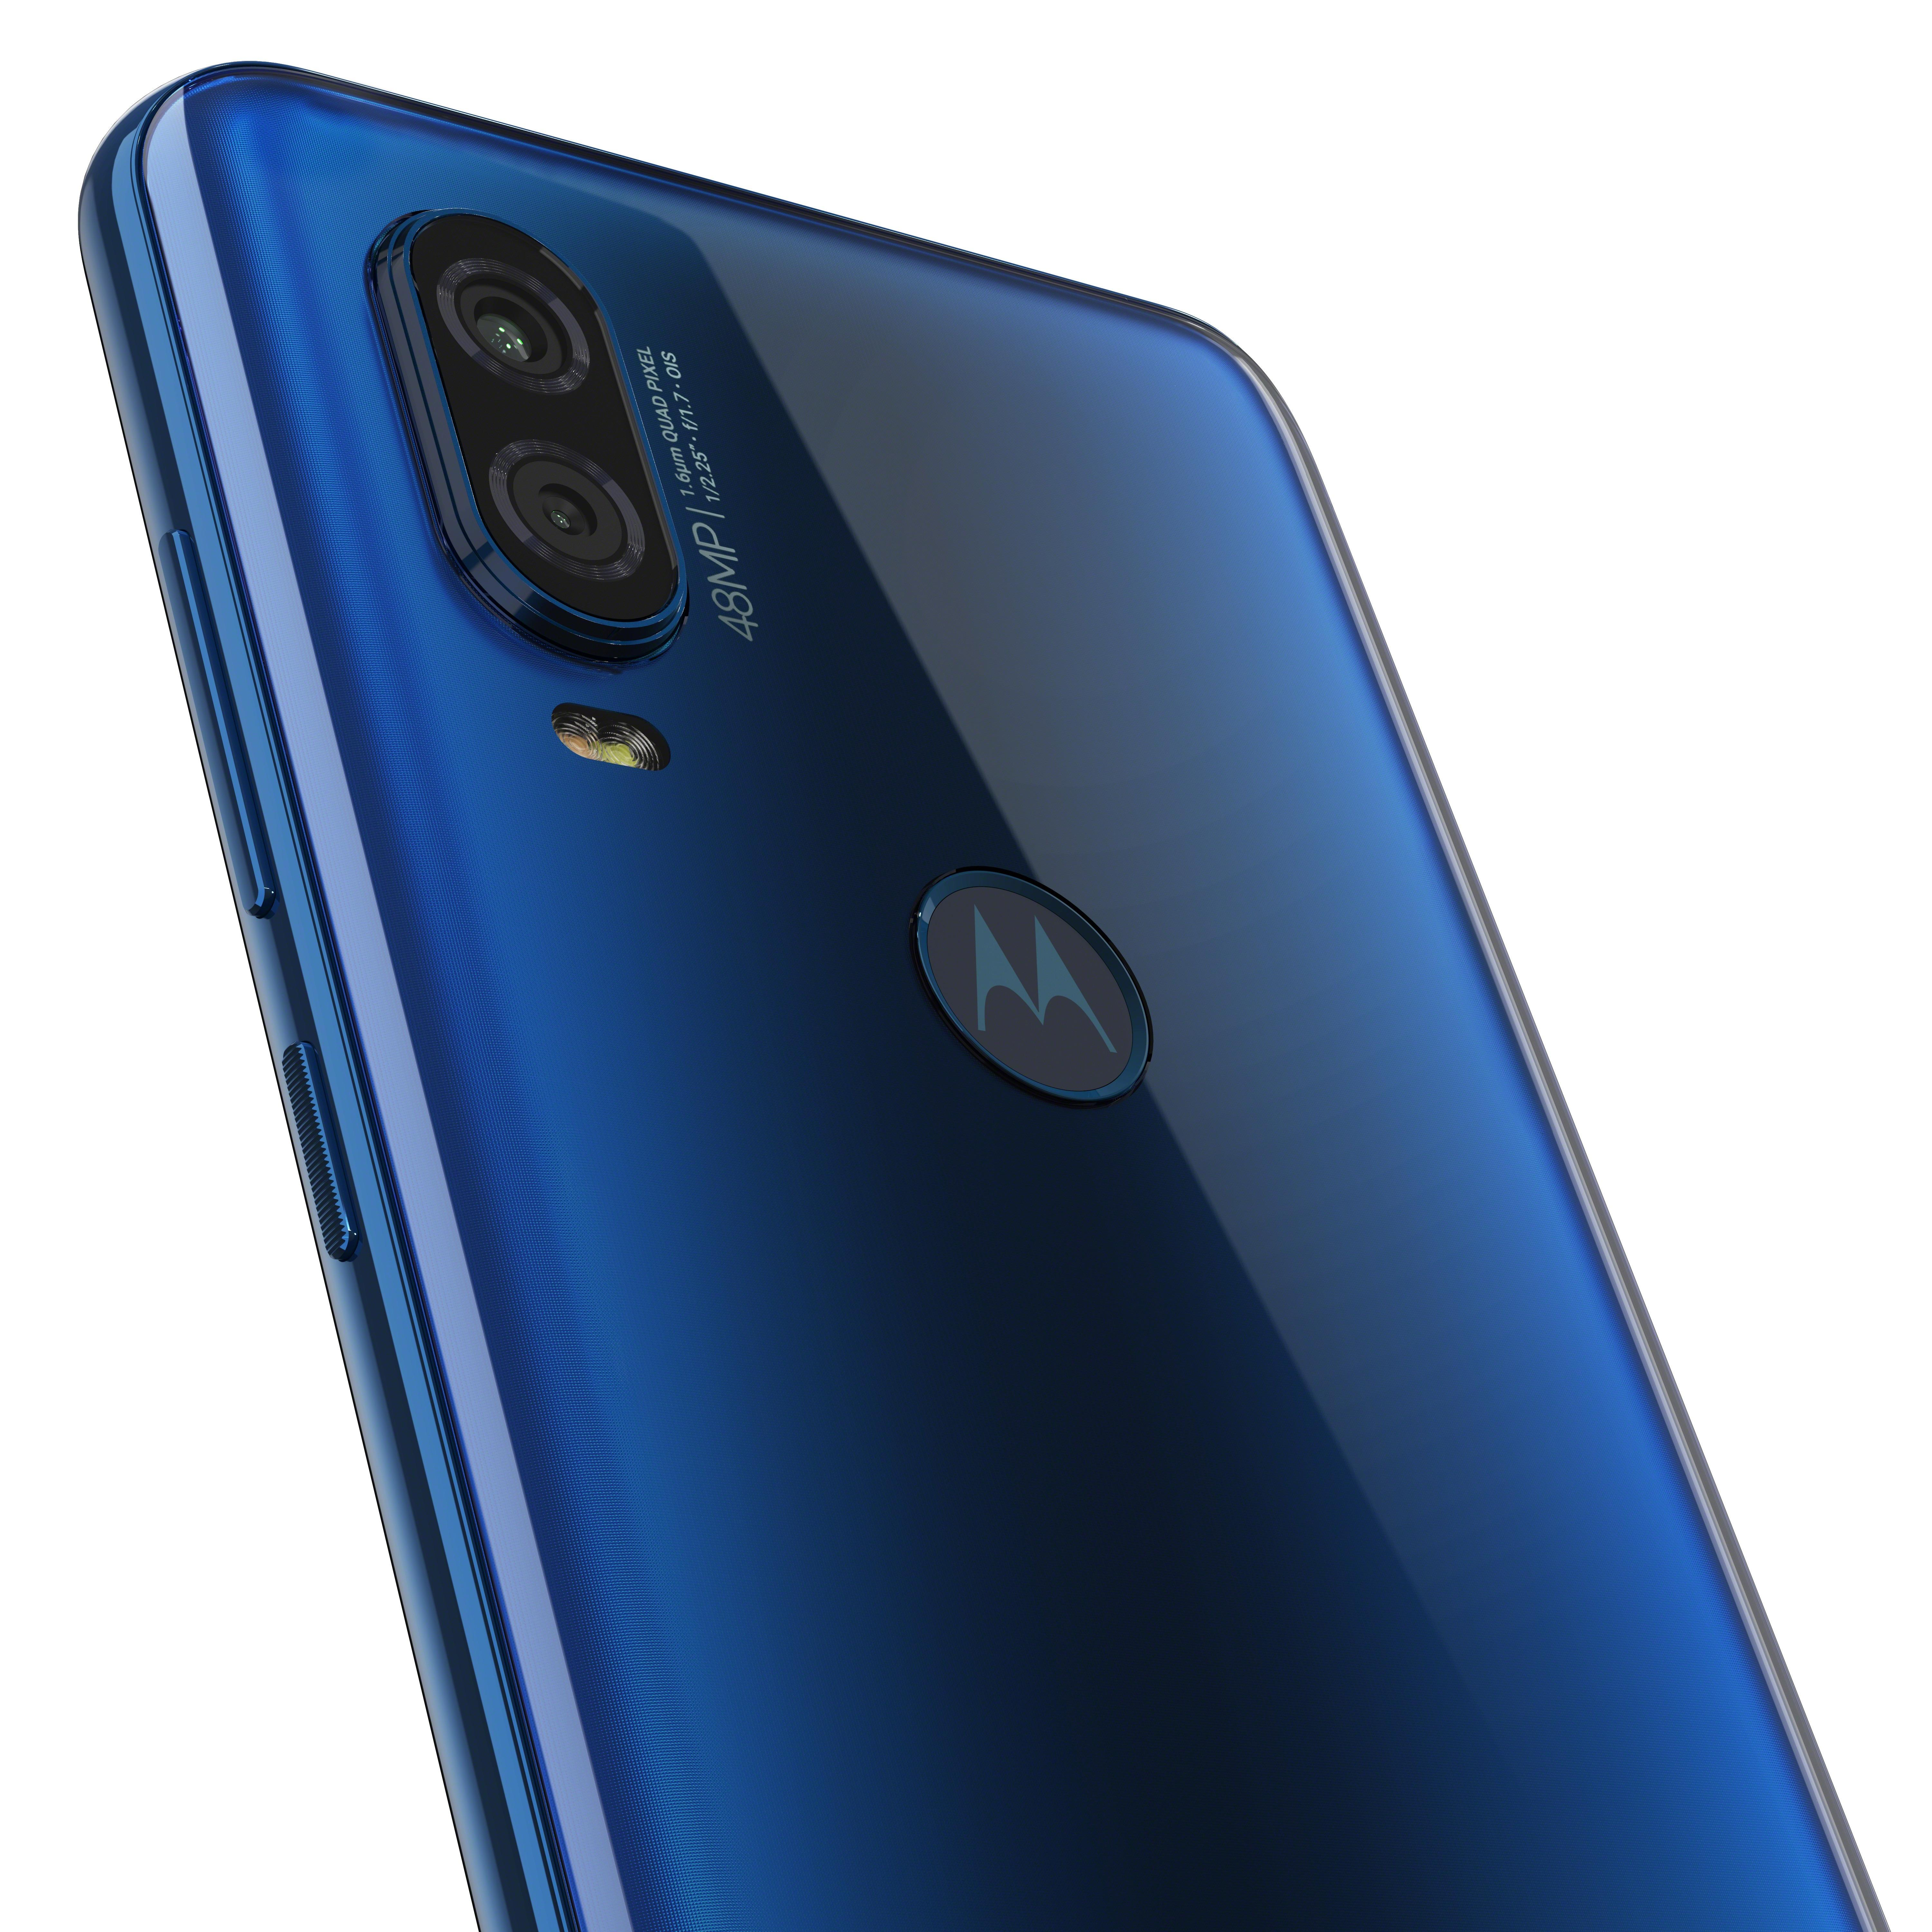 motorola-one-vision-row-sapphire-gradient-camera-detail-2